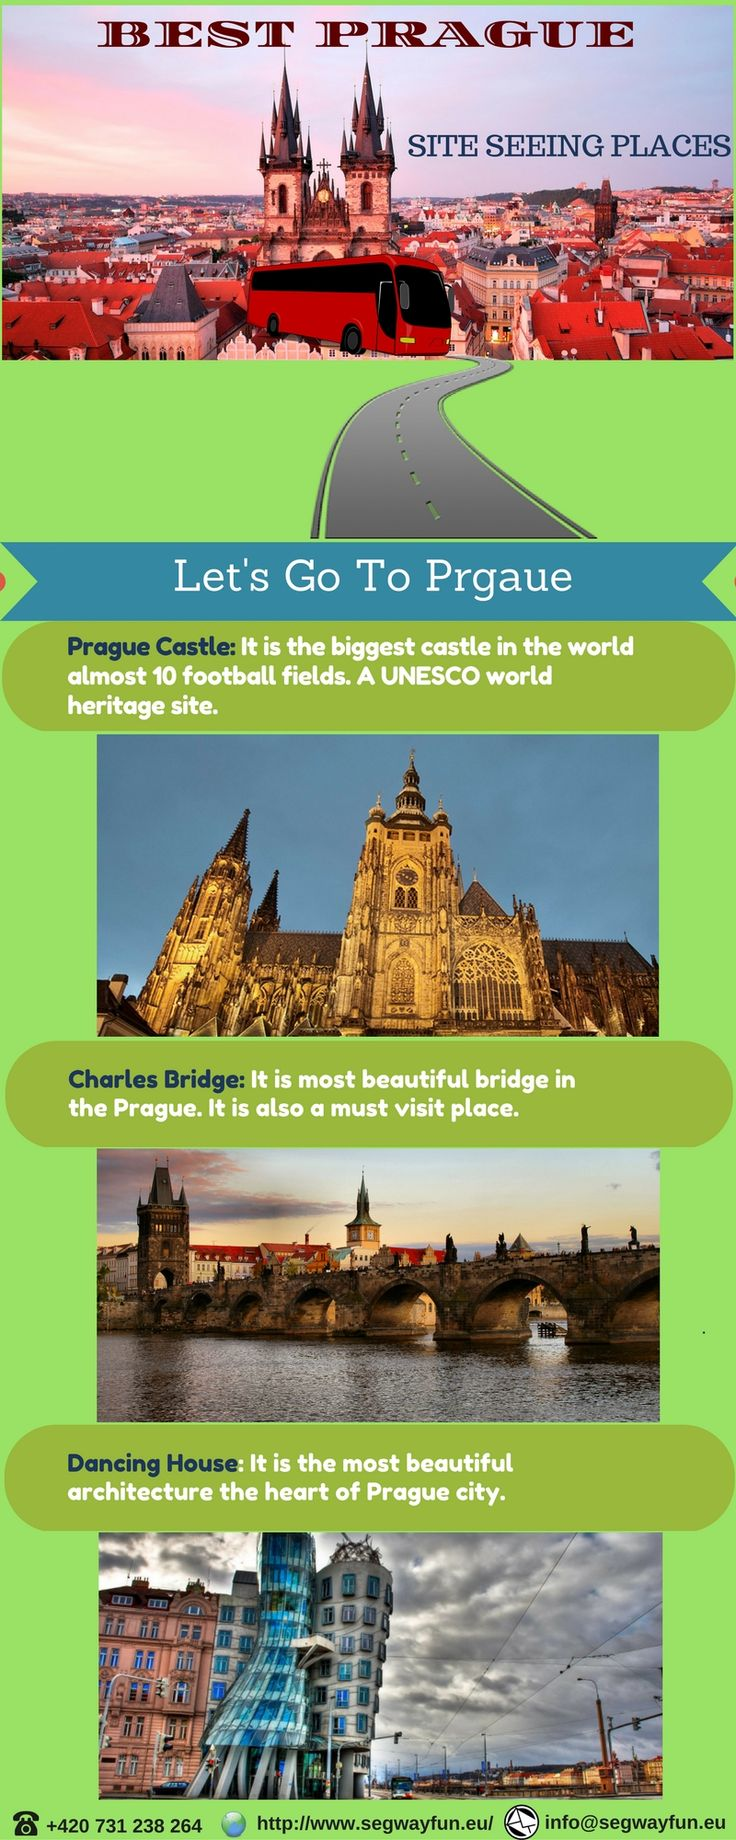 There are many #tourist #attractions in the beautiful #Prague. Here you get complete information on various tourist attractions in this architectural city.